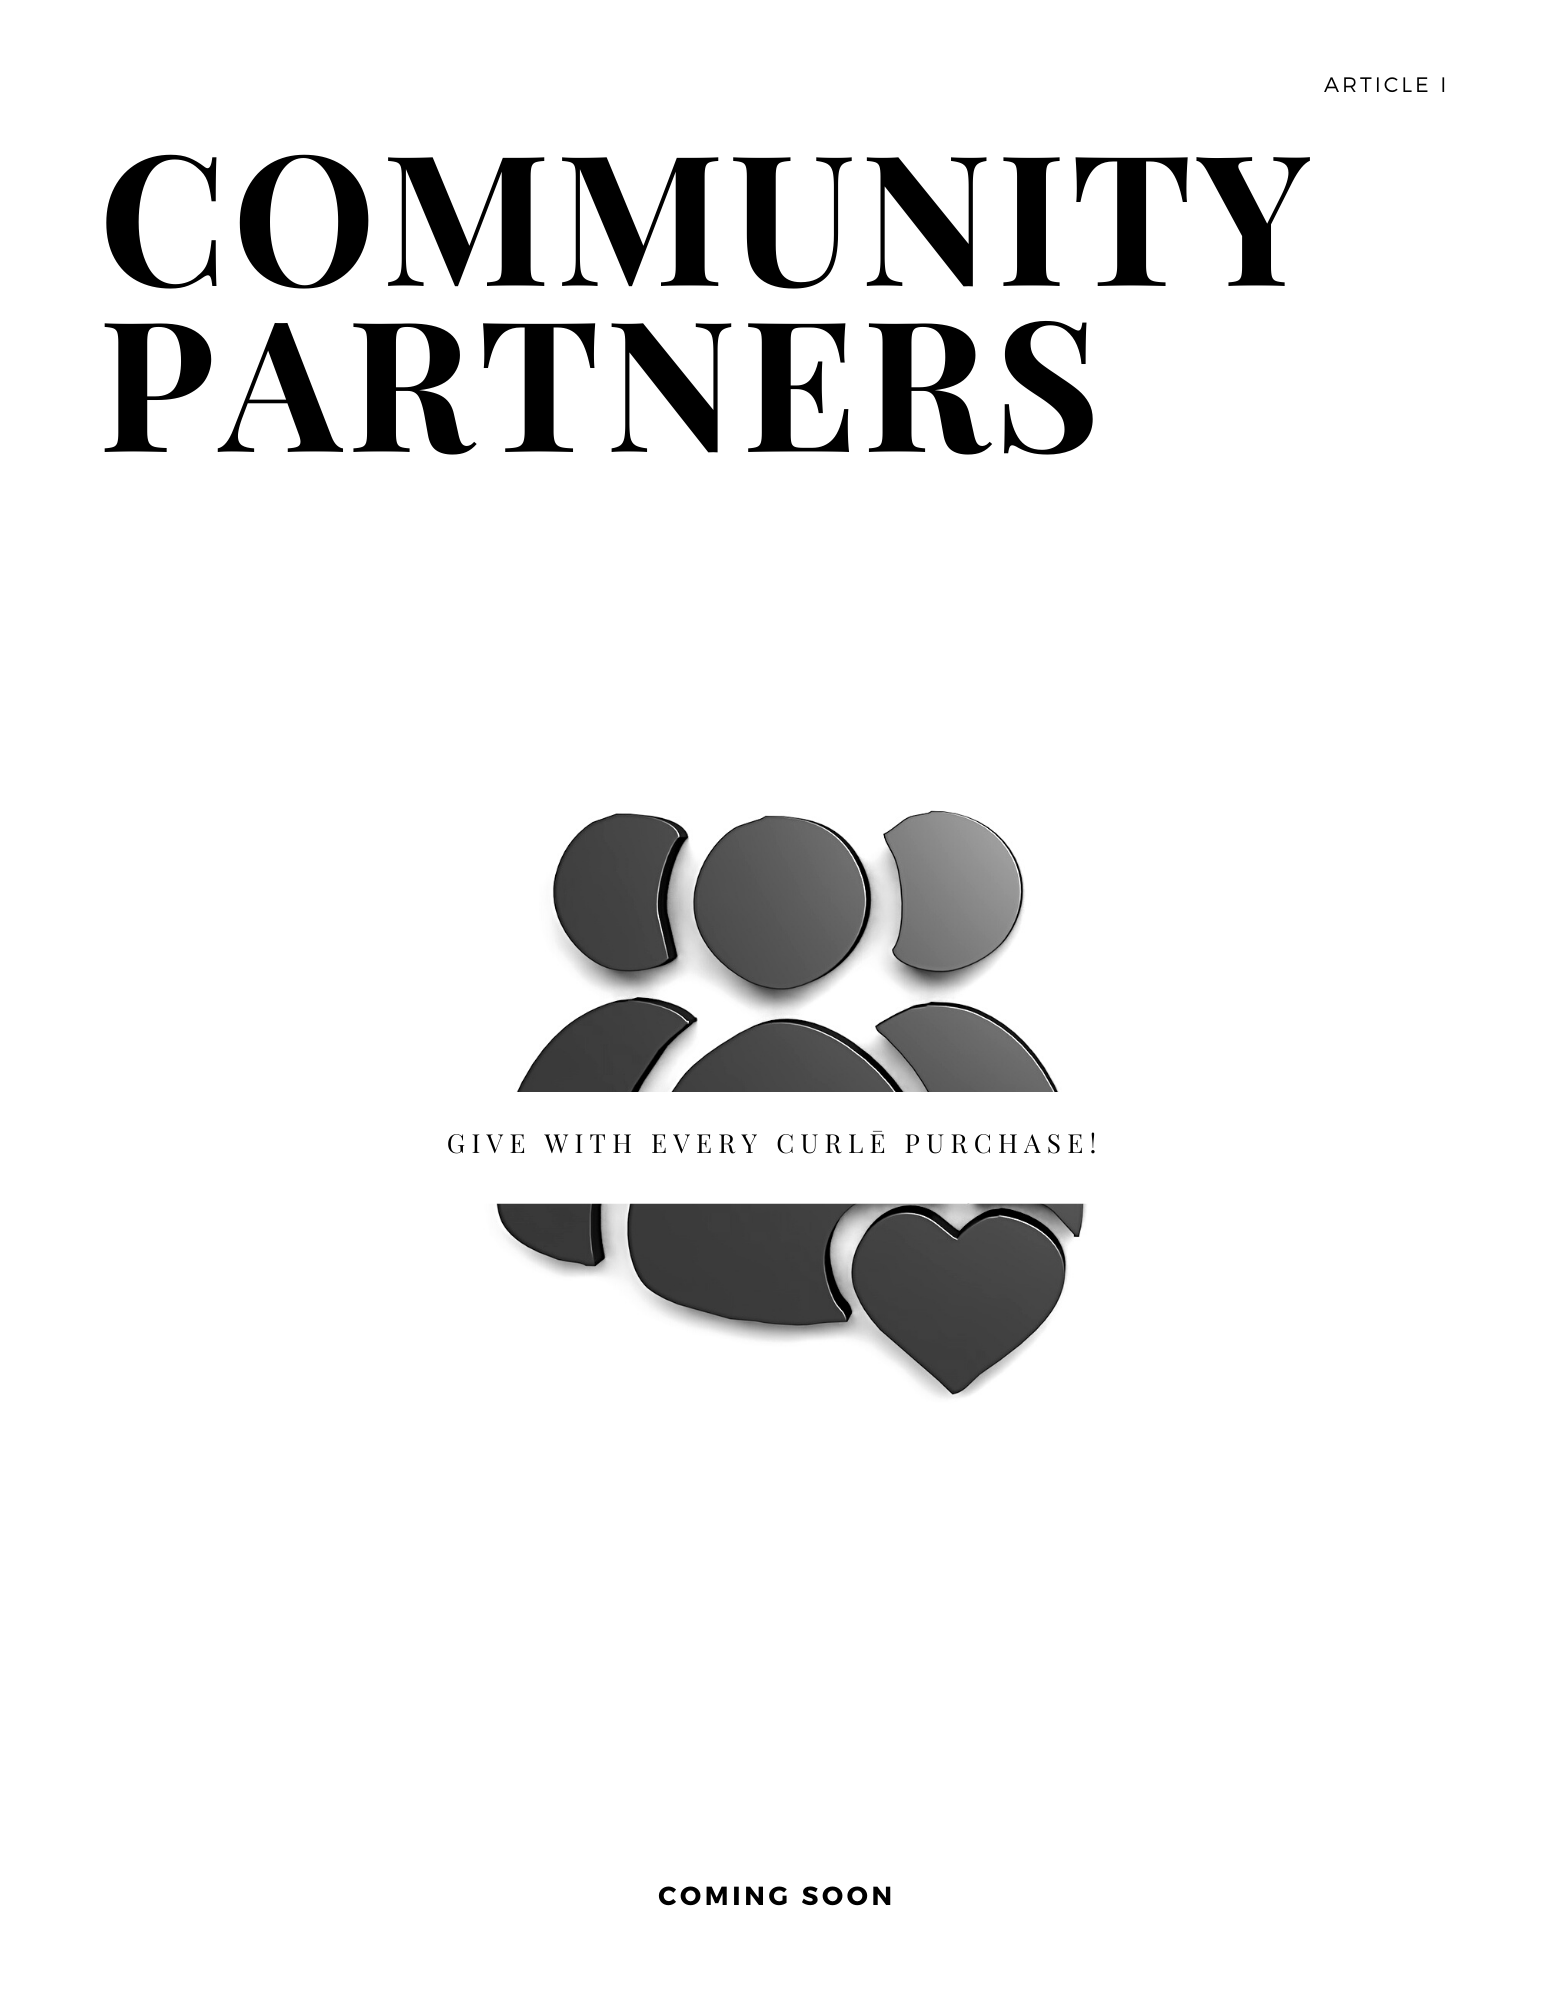 Get to Know Our Community Partners